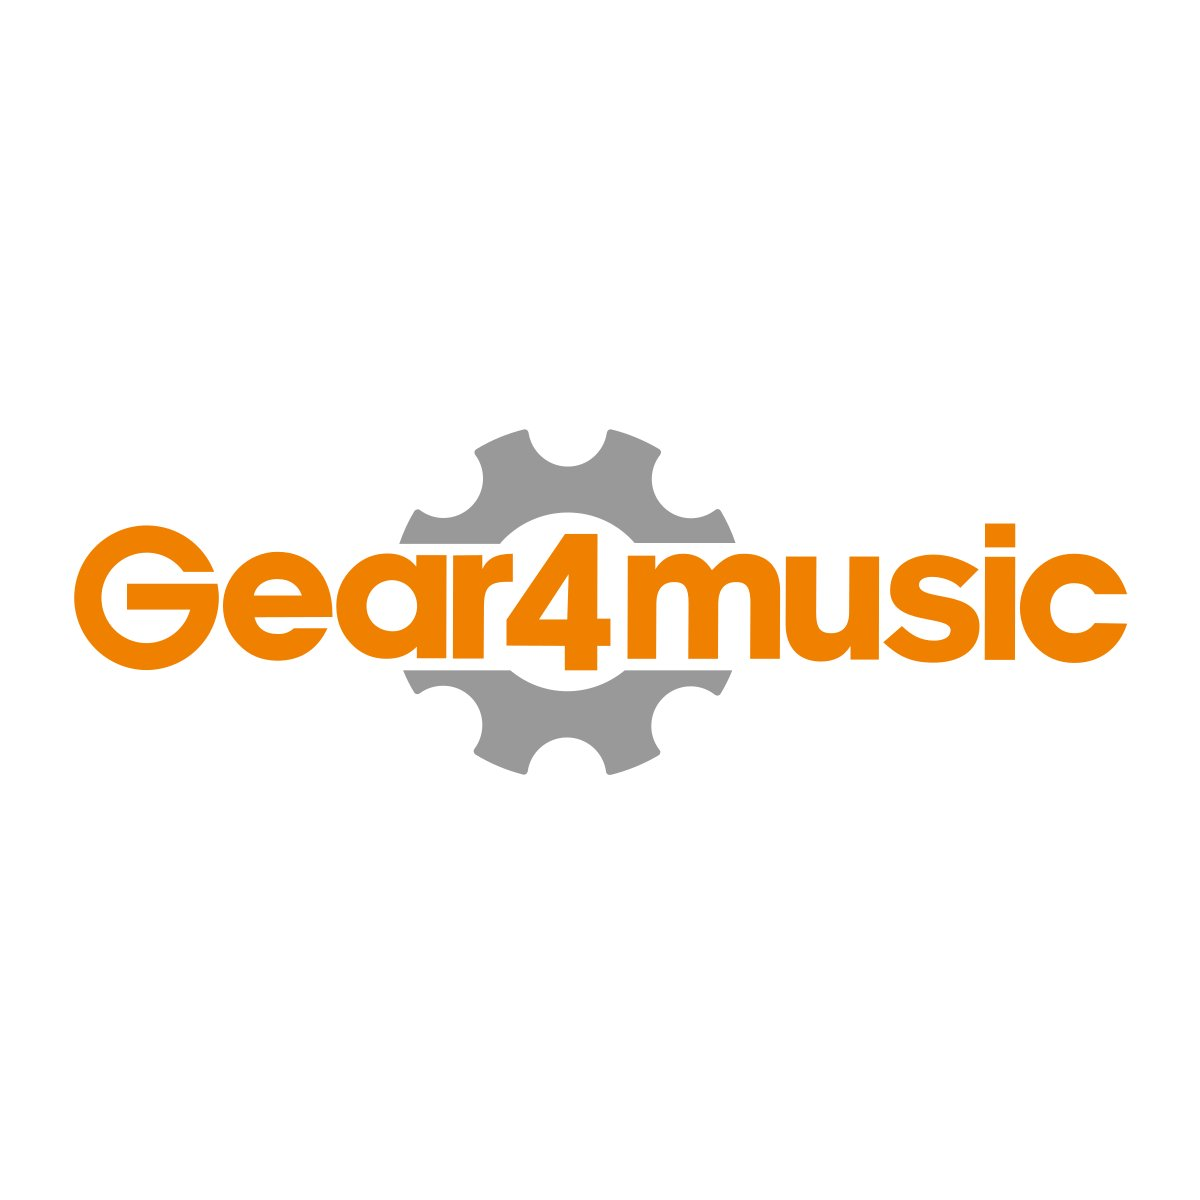 Deluxe gitaarband door Gear4music, Tan